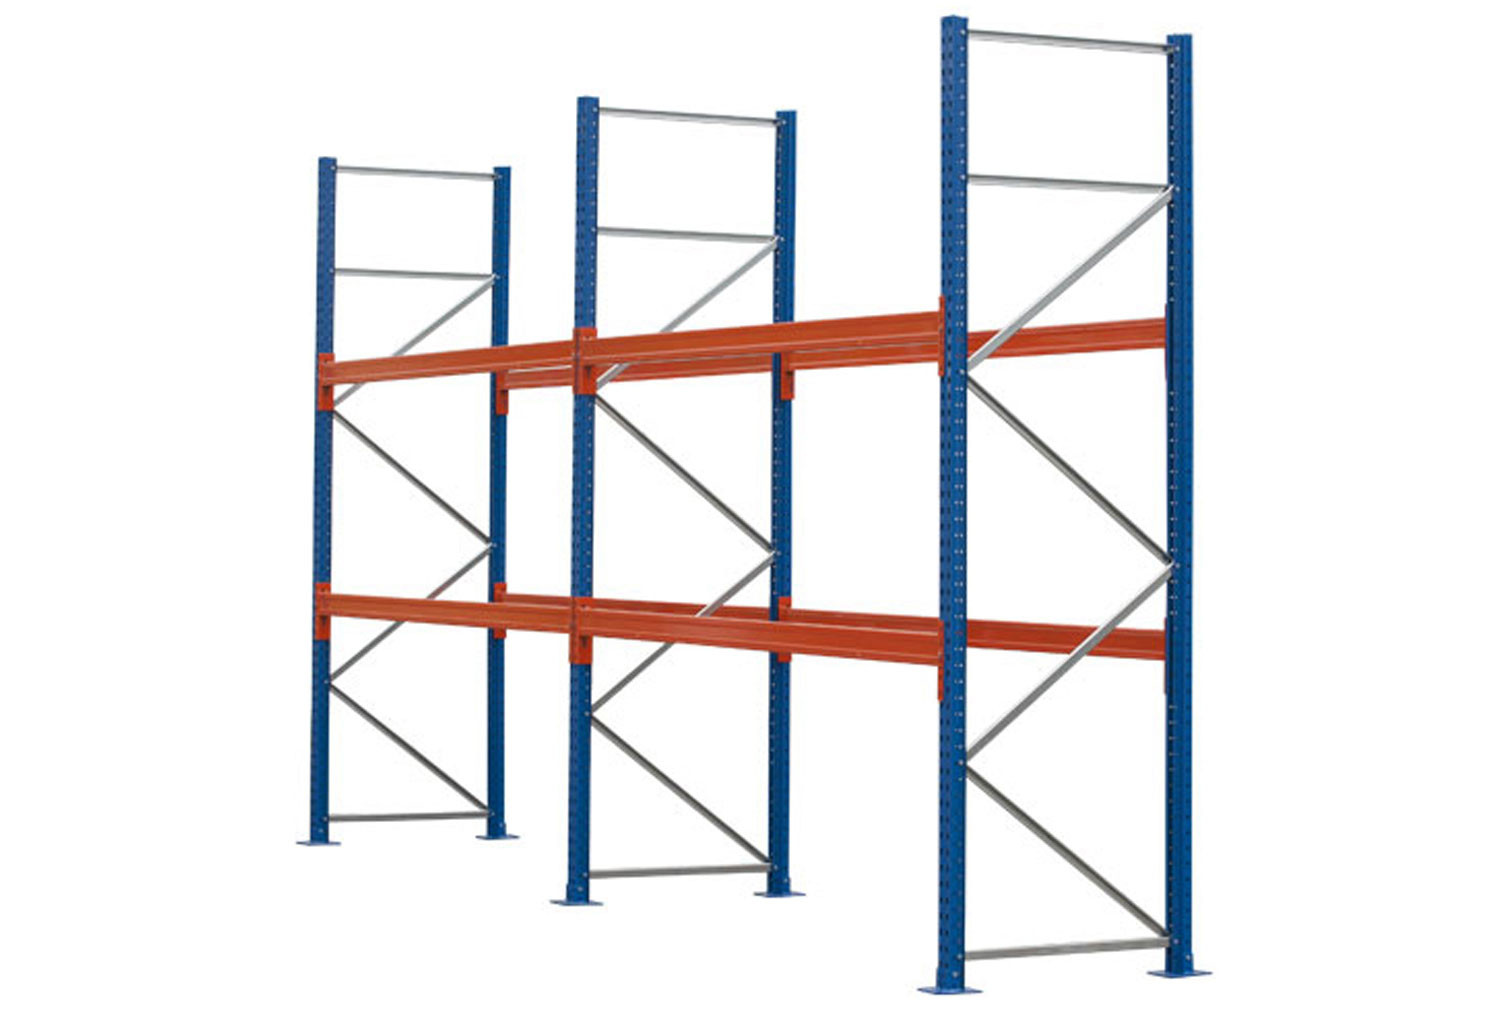 Pallet Racking Kit For 40 Pallets 14075wx4000h